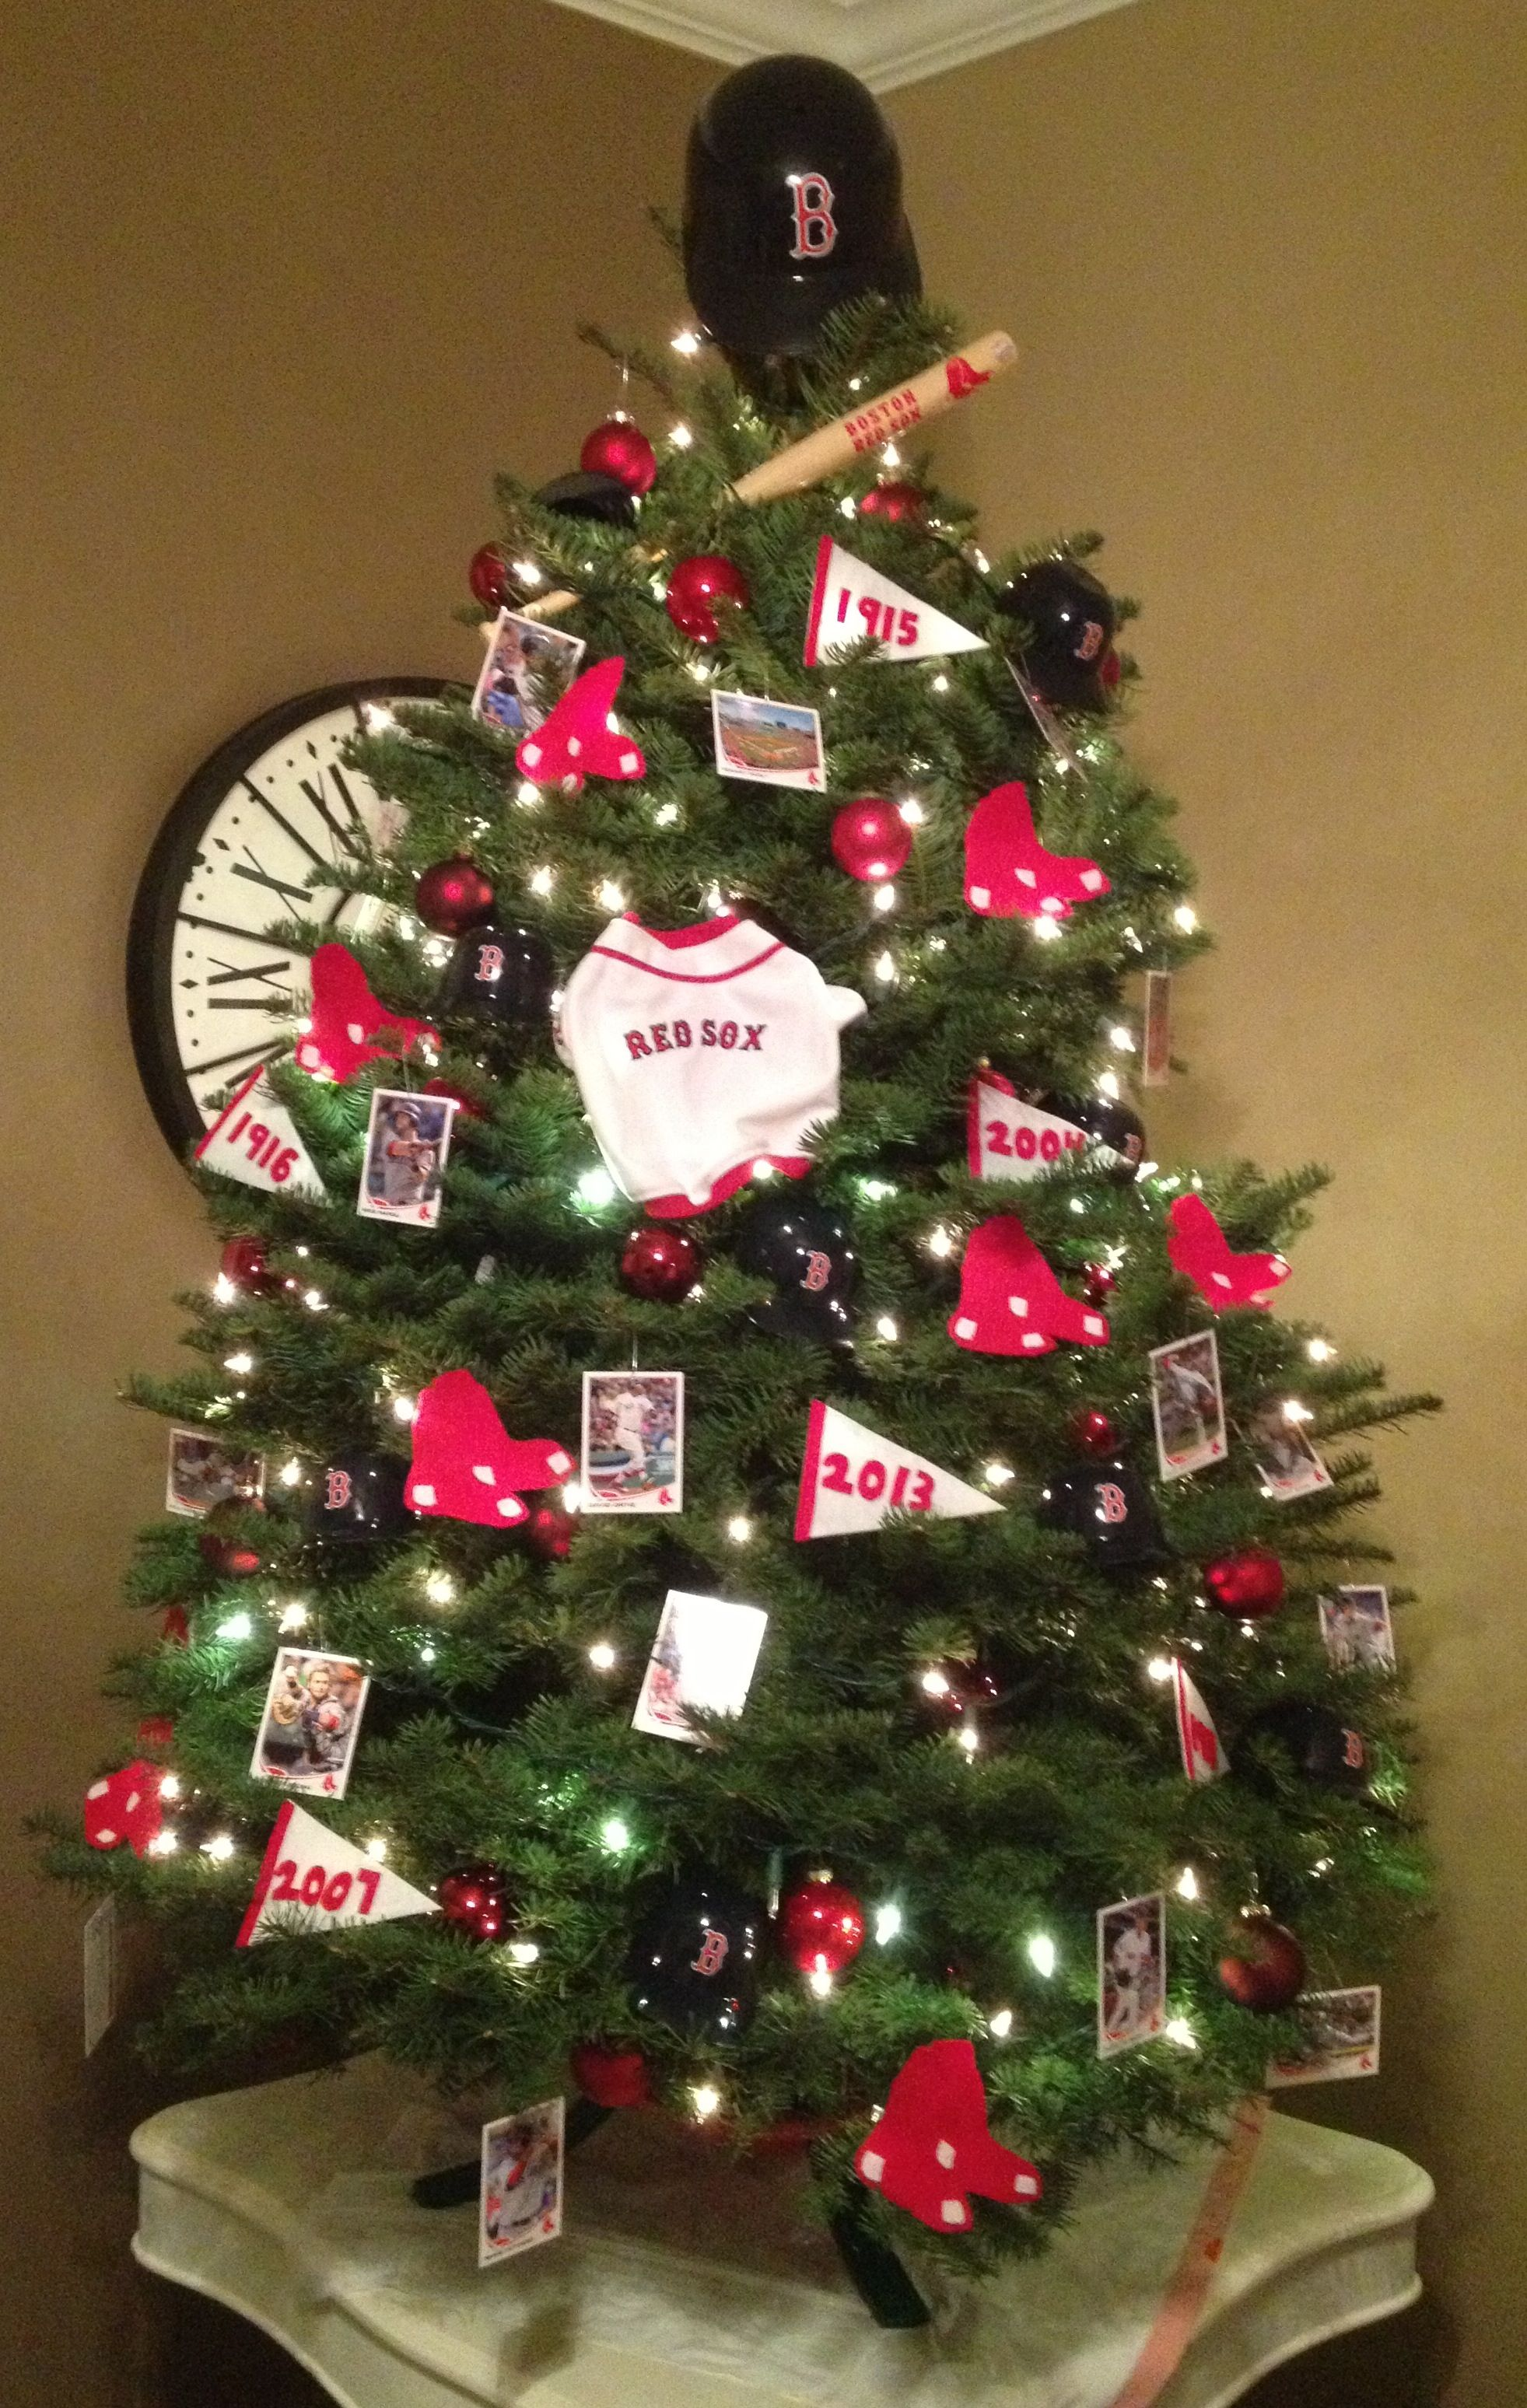 Red Sox Christmas Tree redsox bostonstrong Red